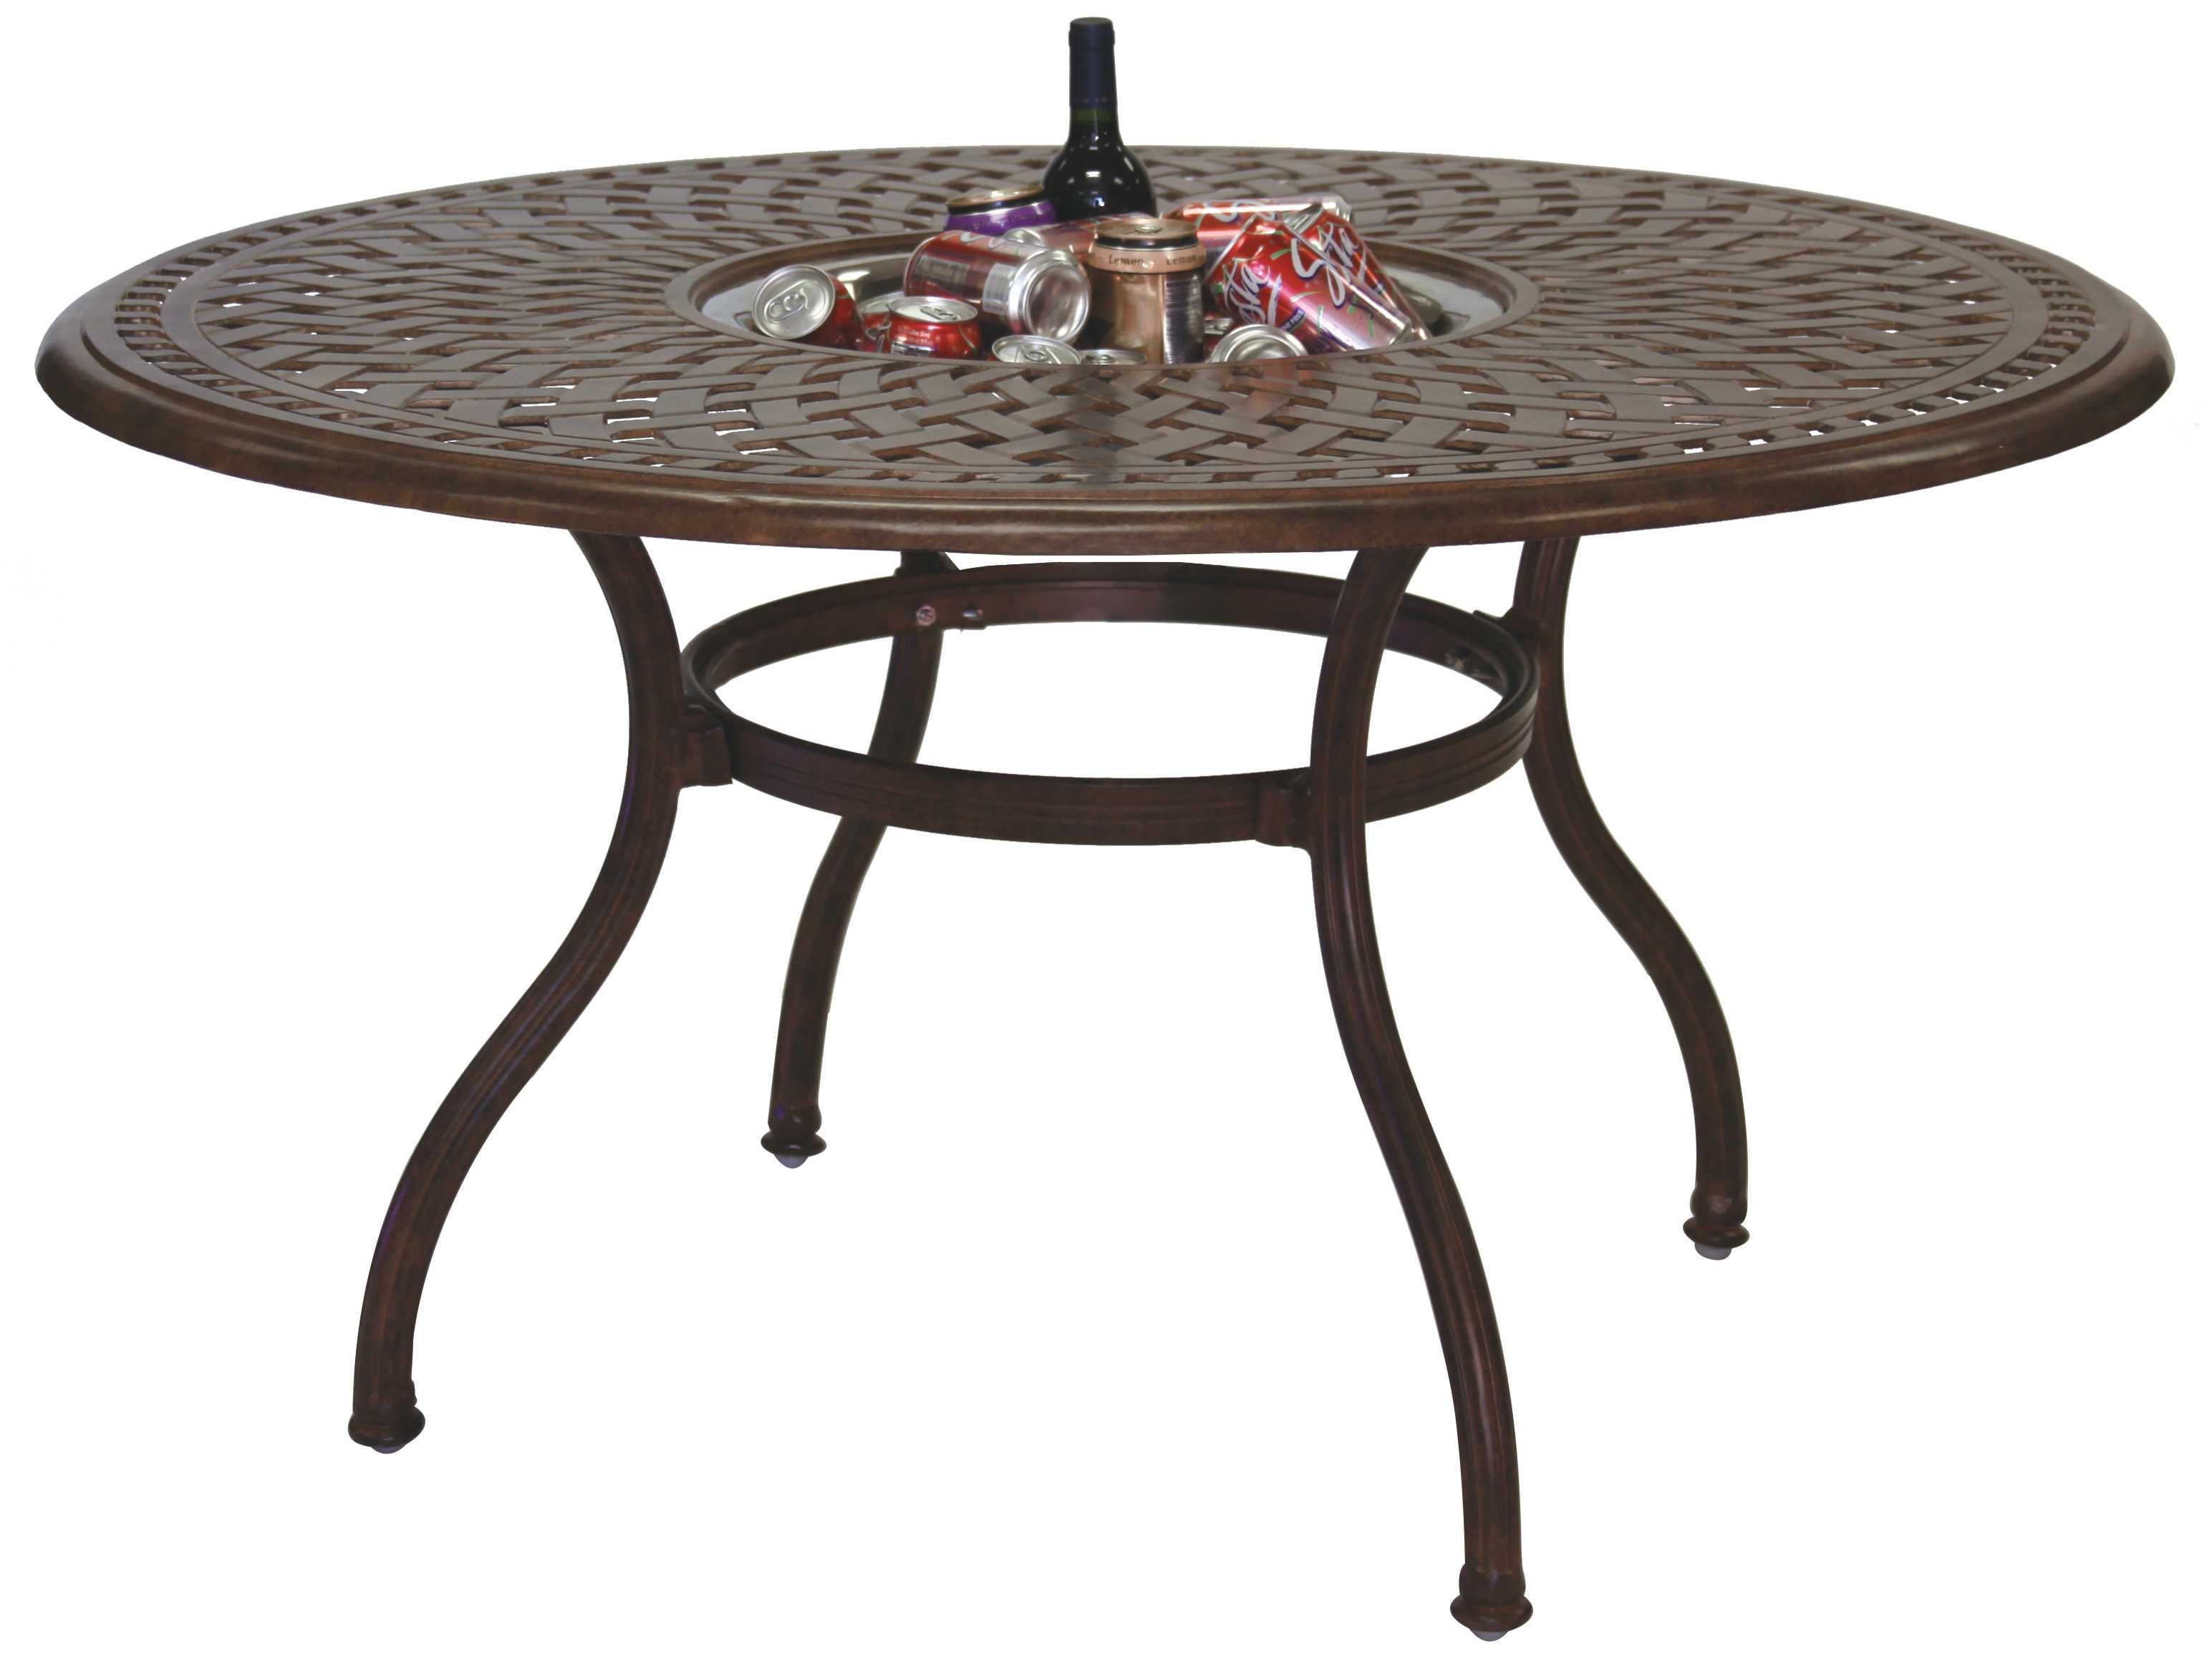 Darlee outdoor living series 60 cast aluminum 52 round for 52 table view